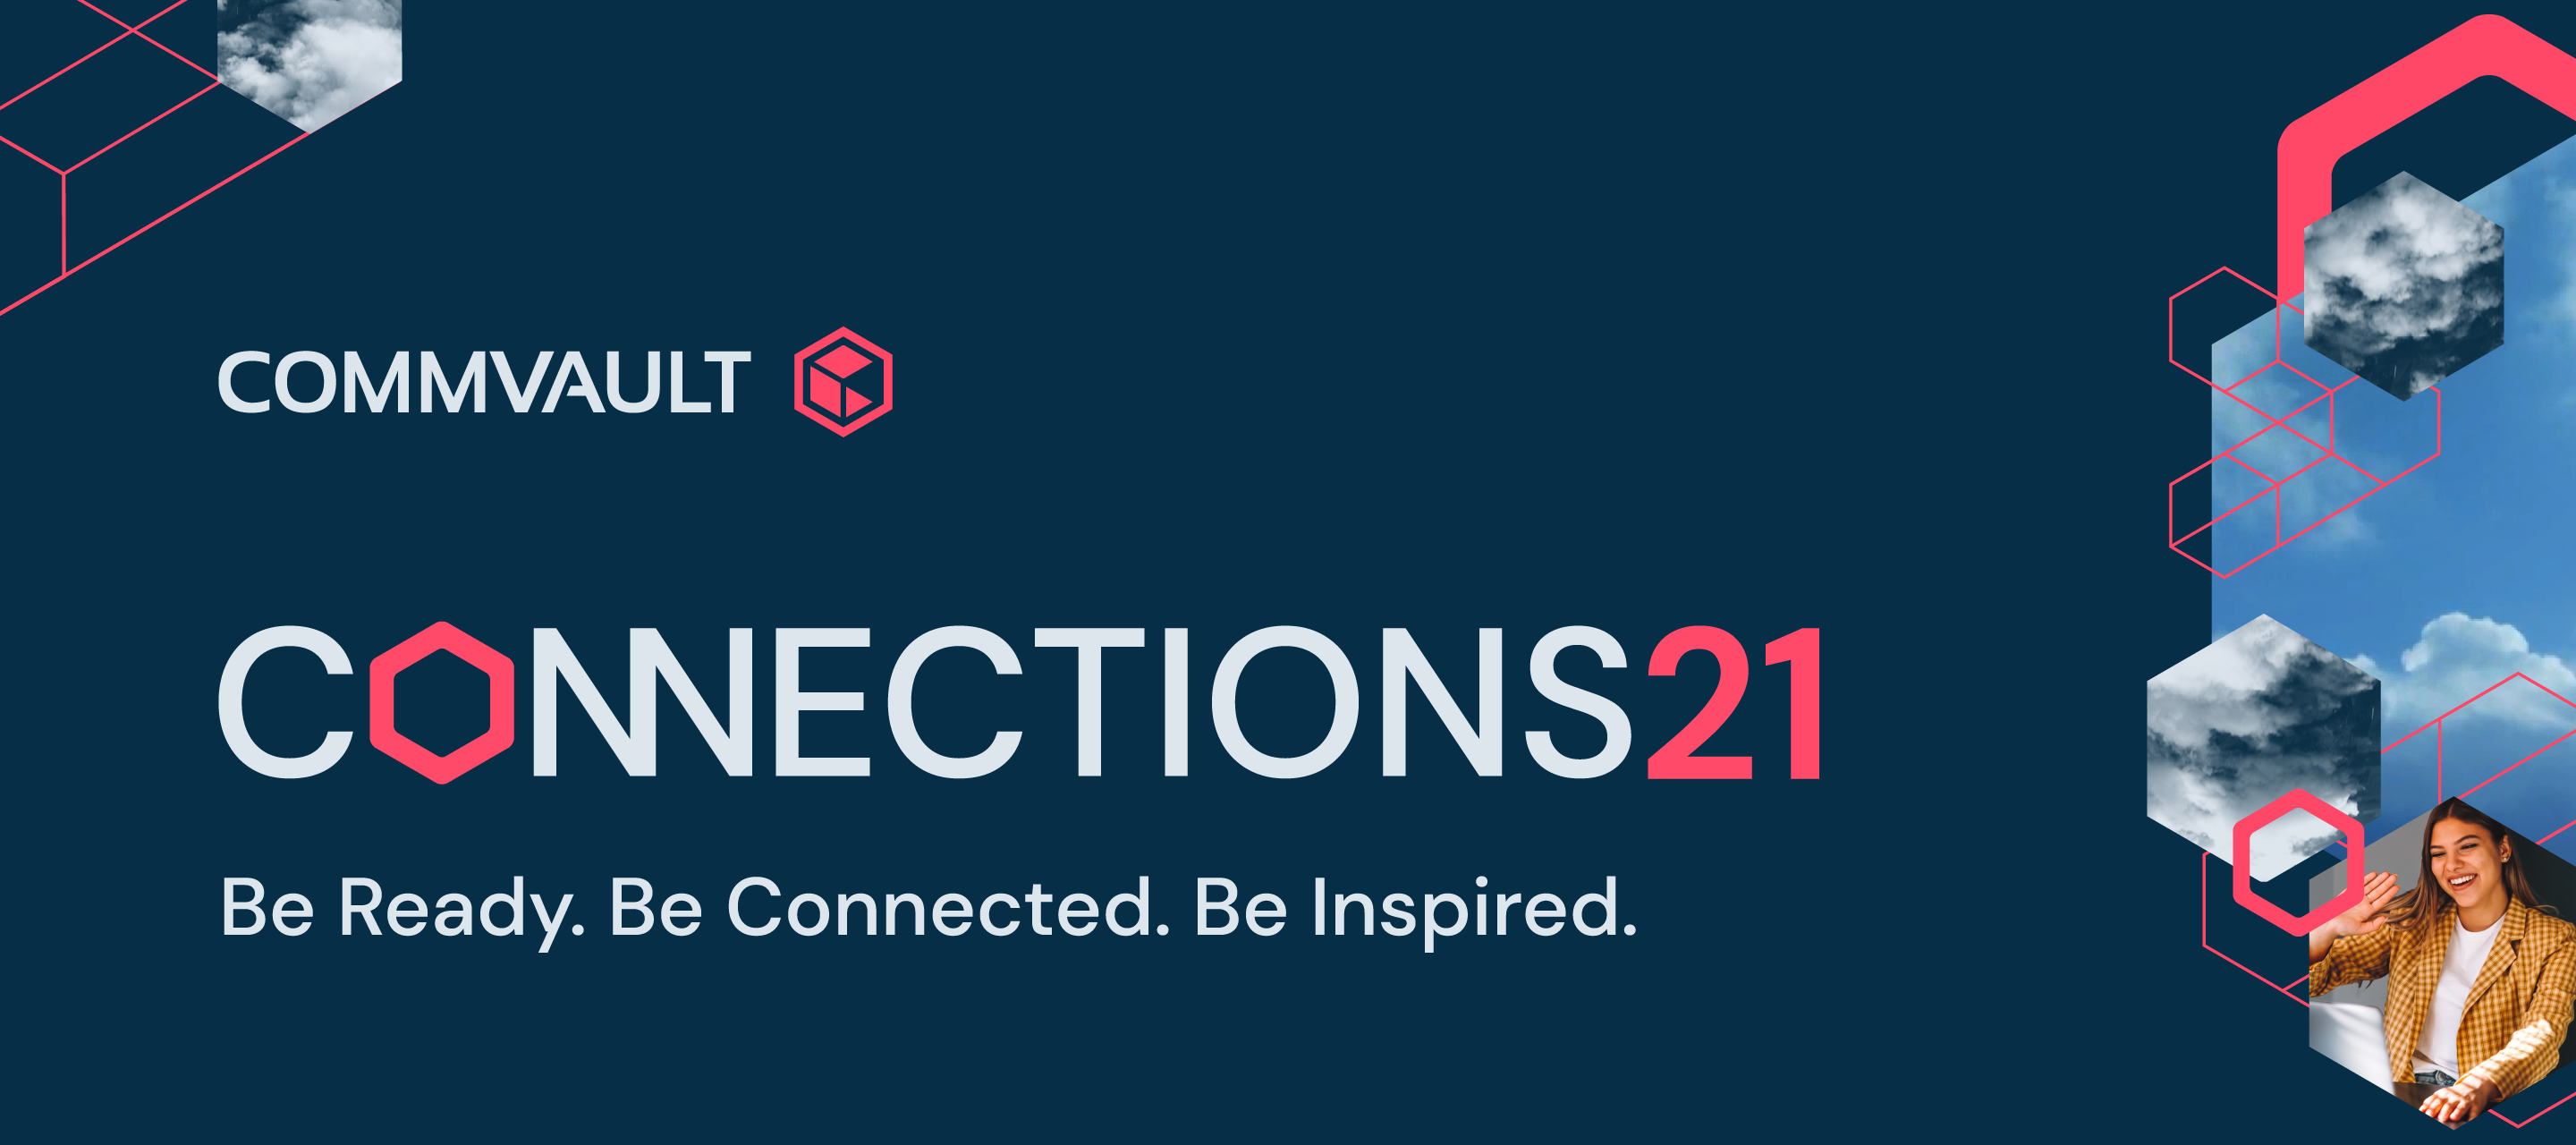 Sign up for Commvault Connections21 - global hybrid event, Oct. 28